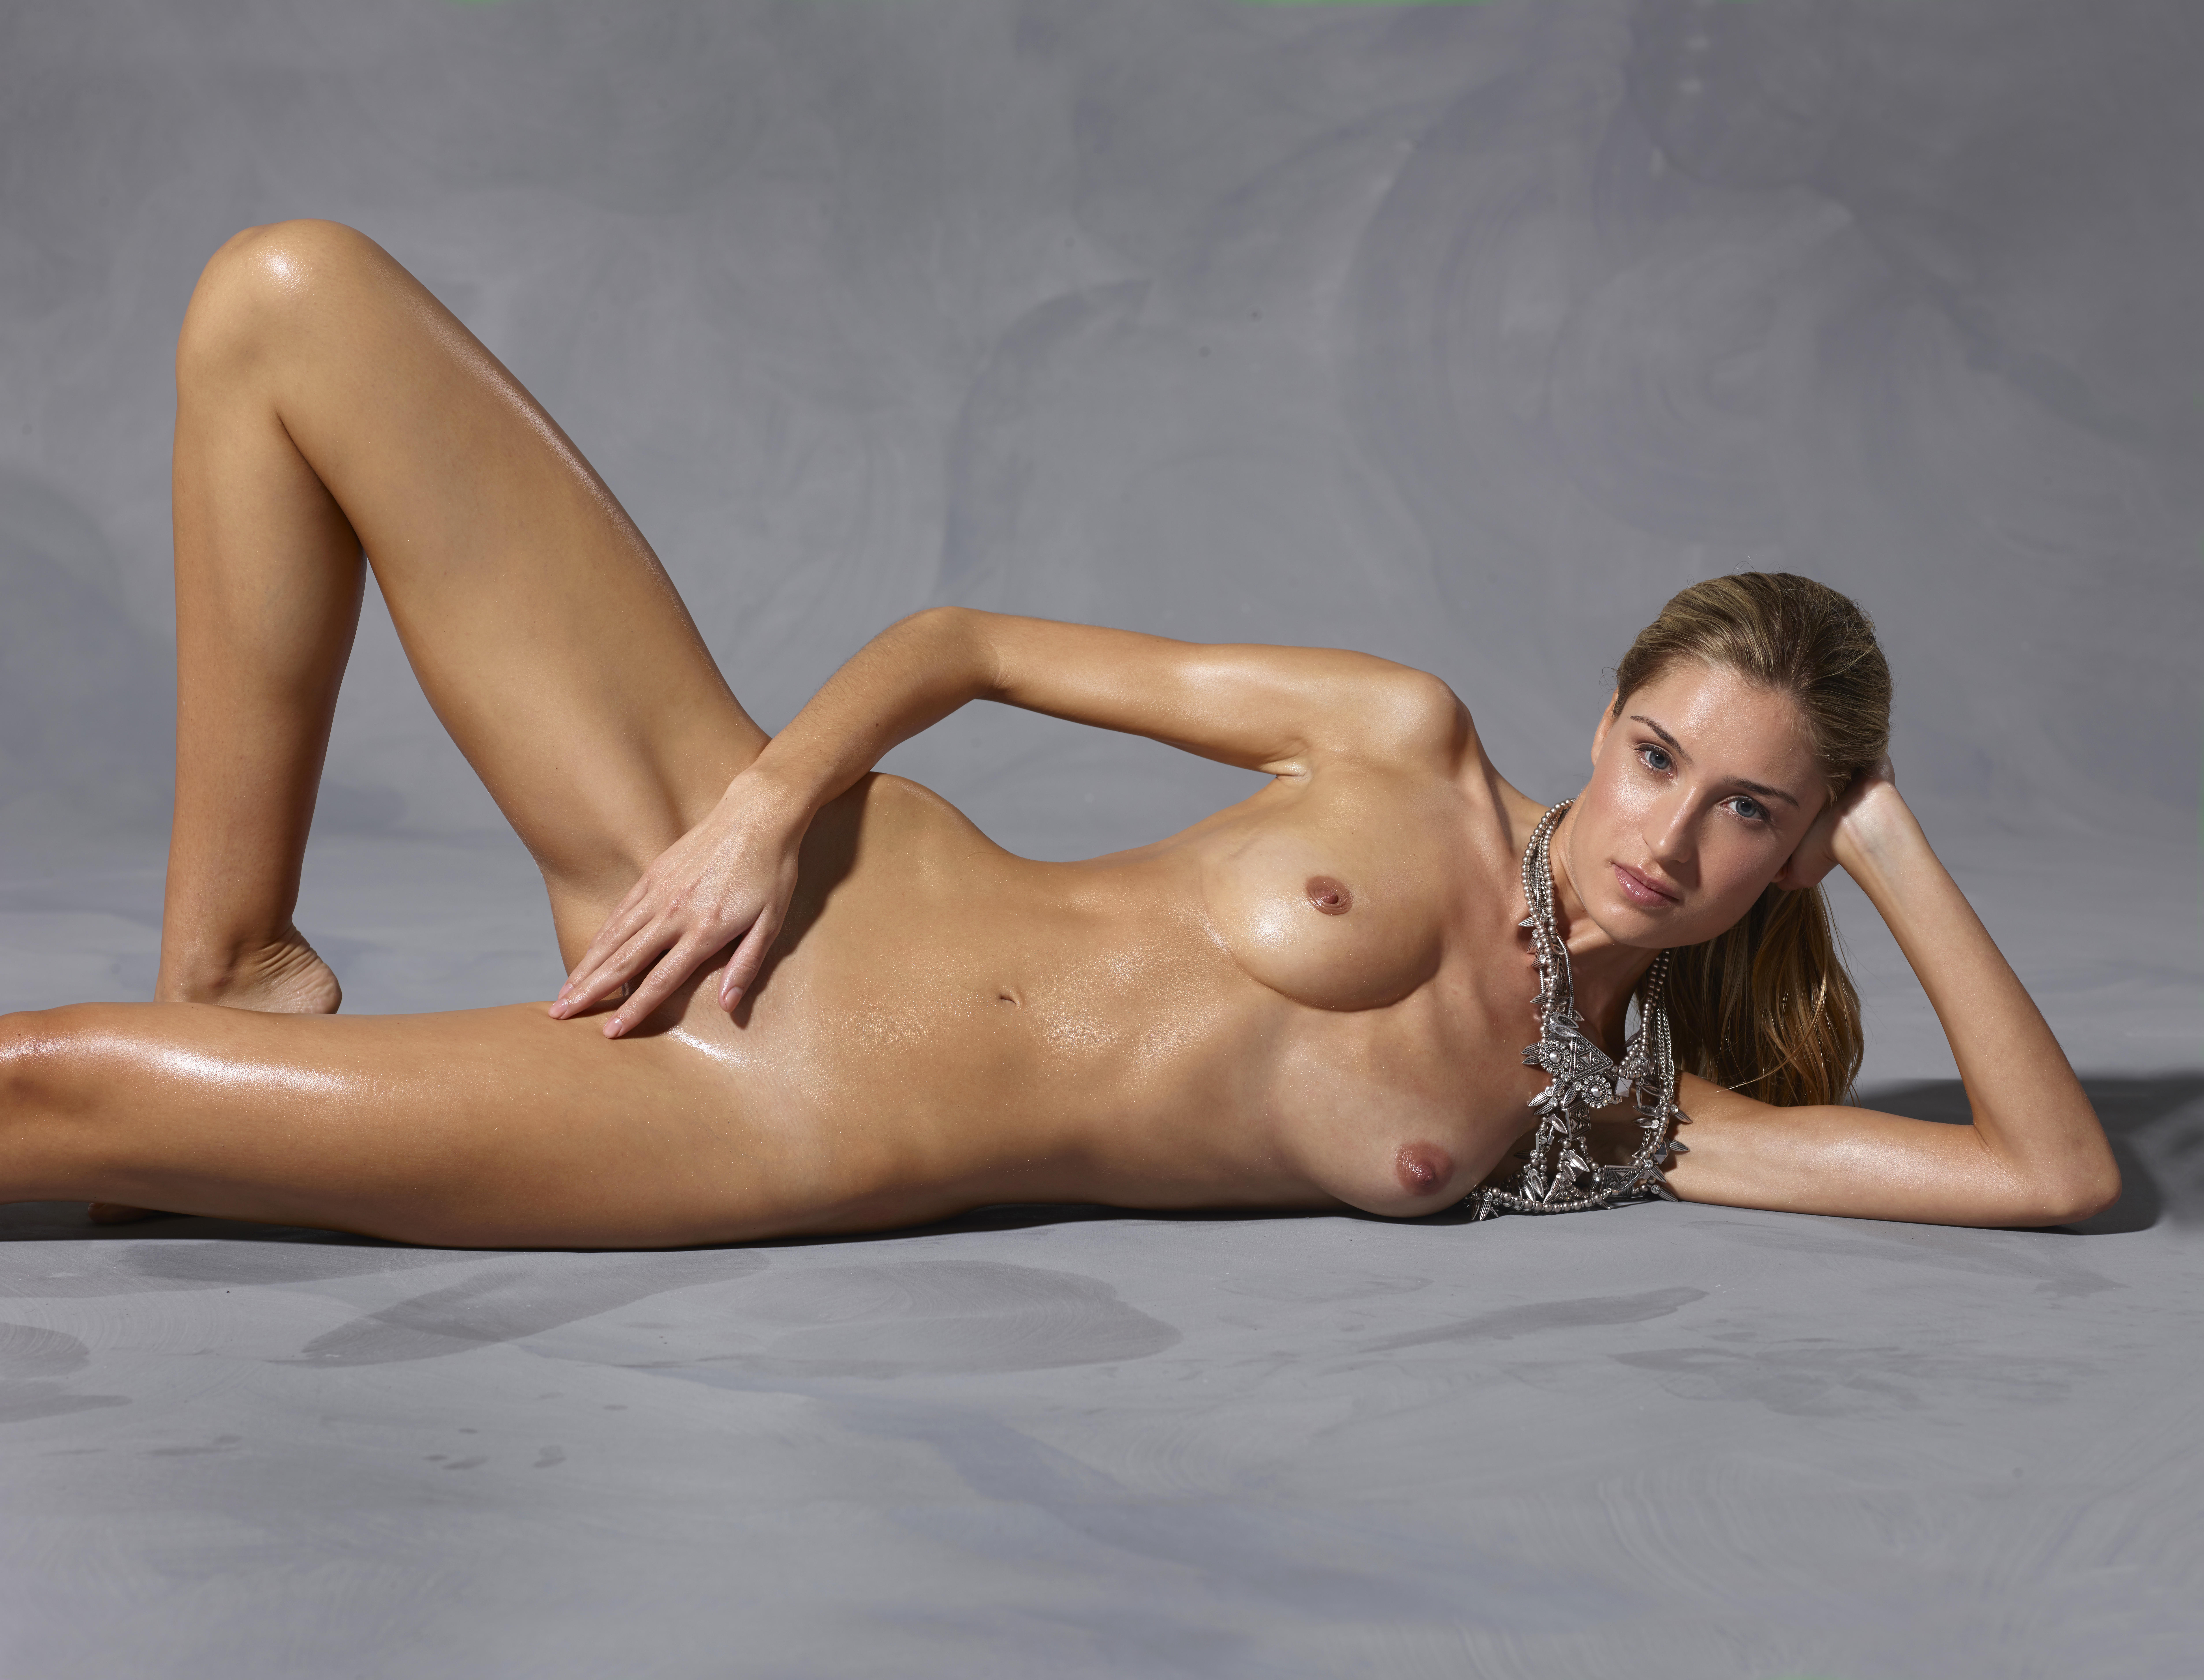 Chinese model nude show